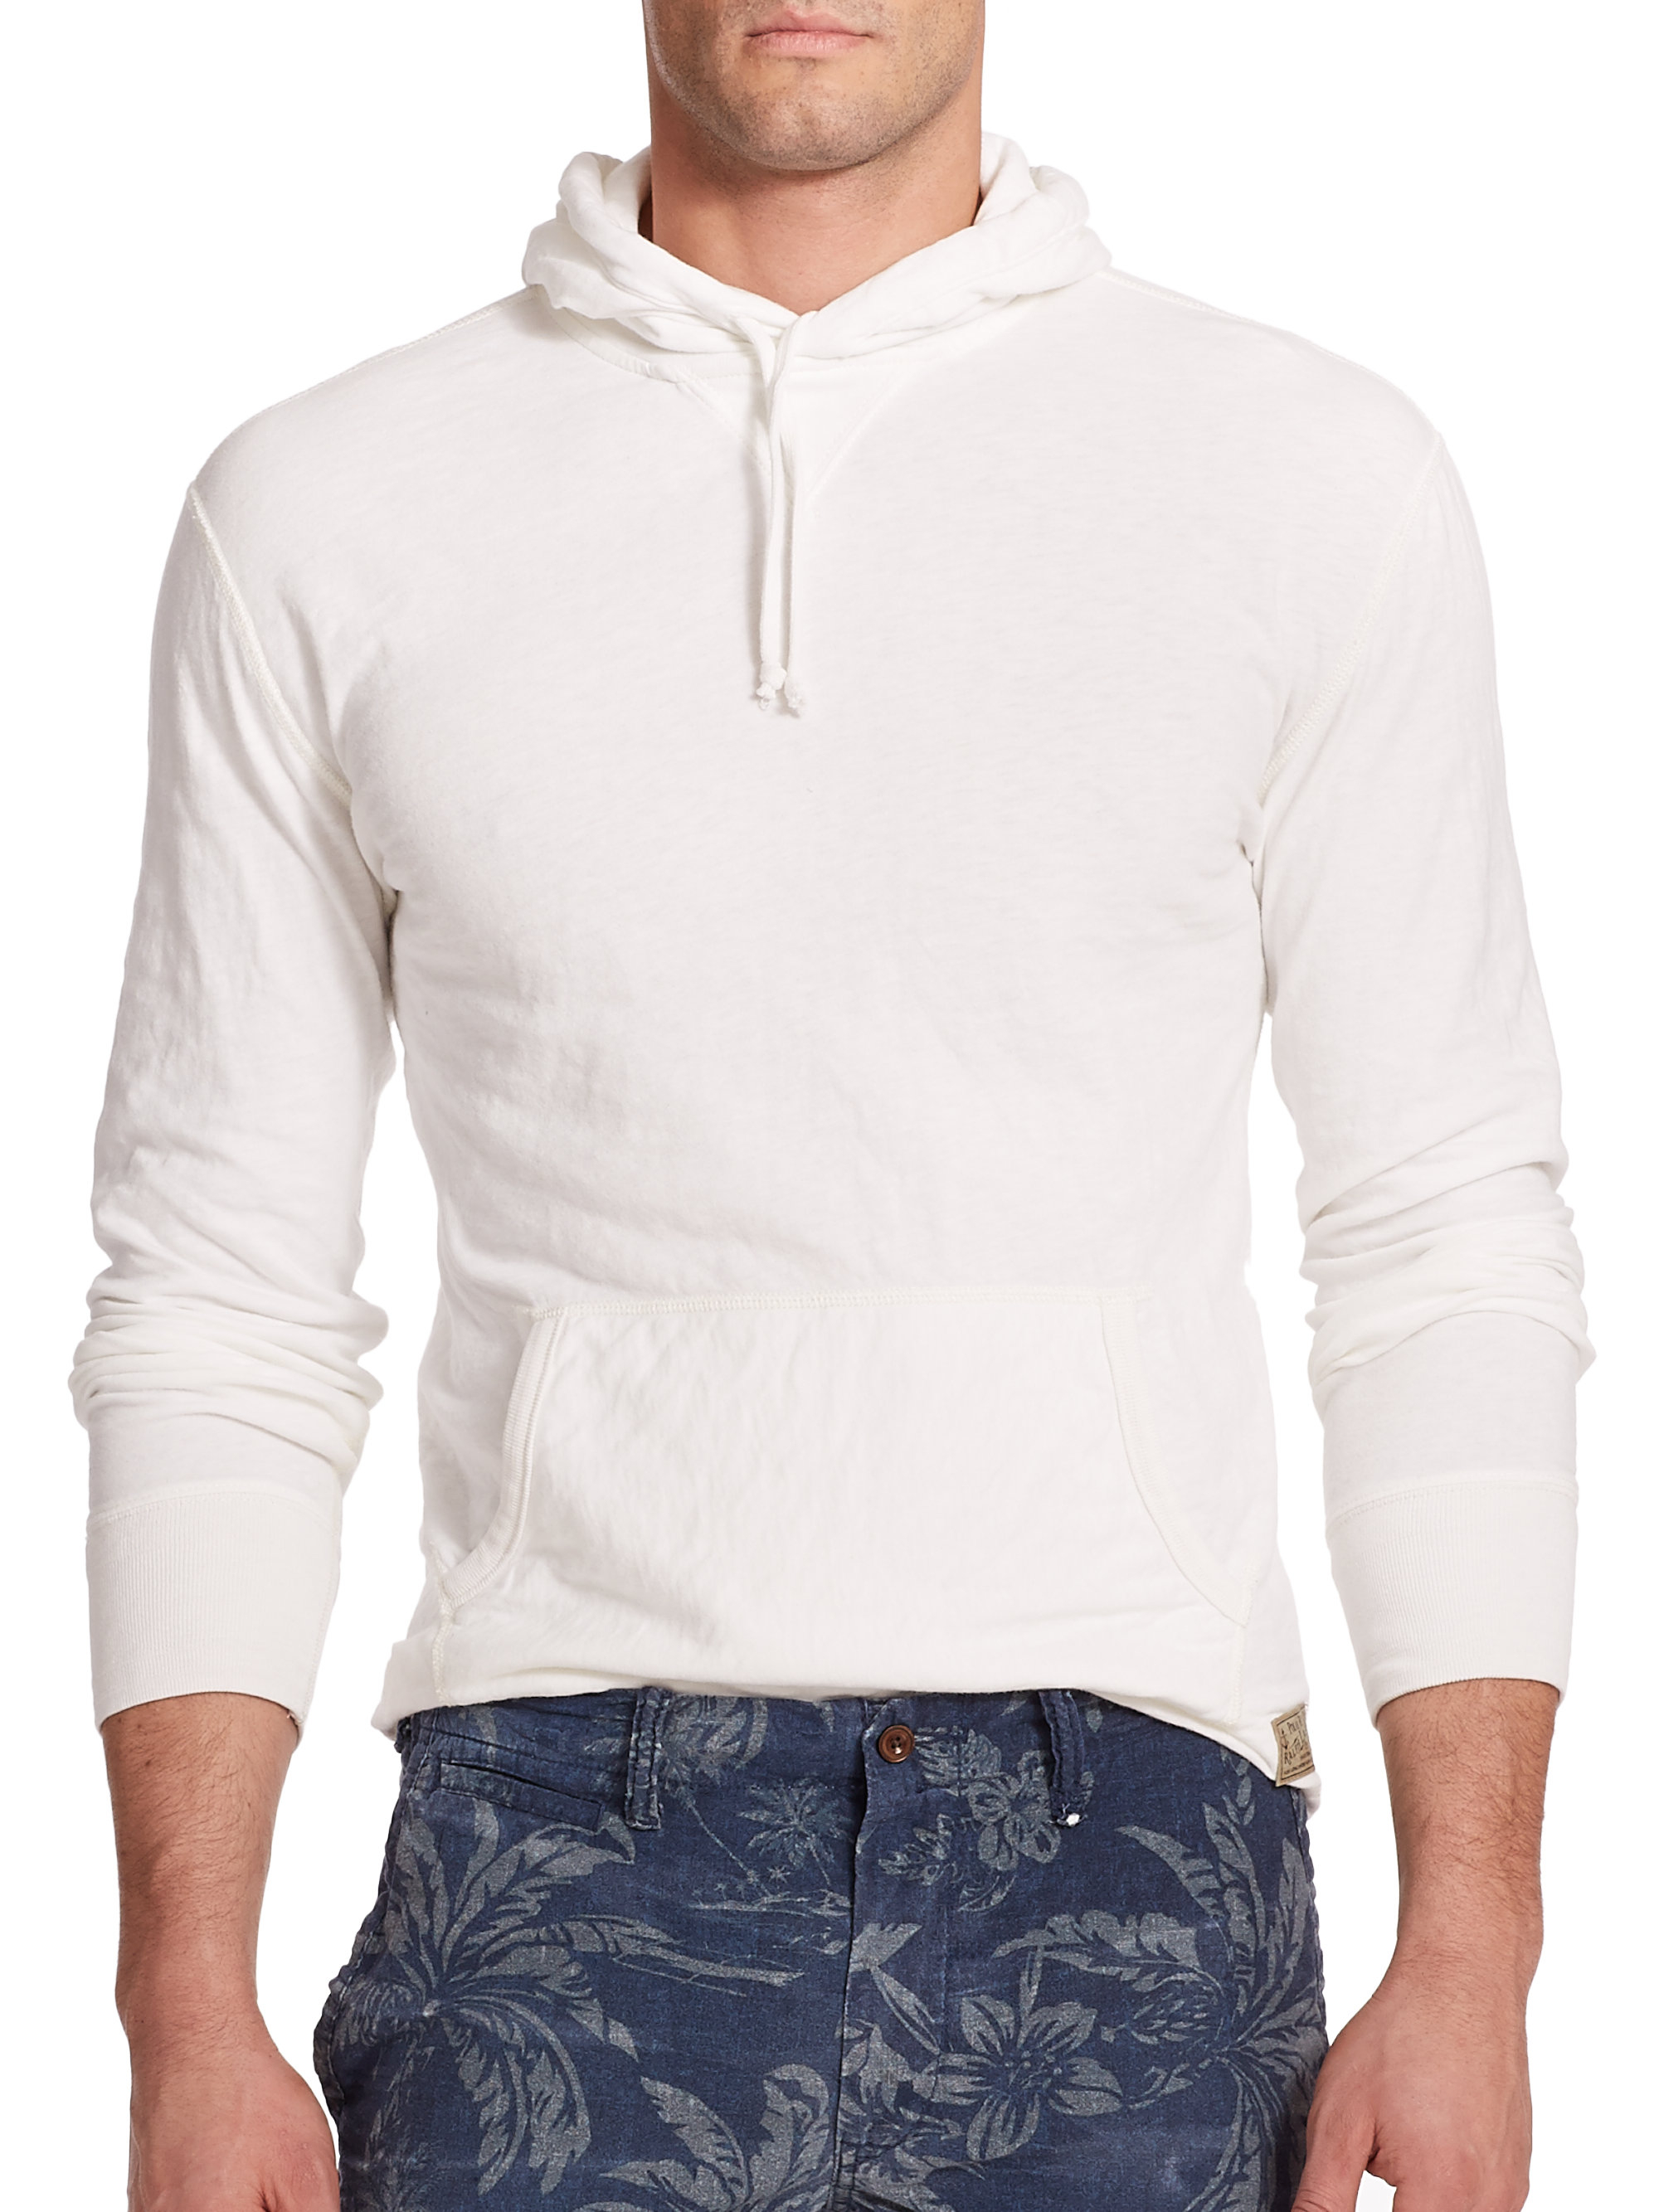 polo ralph lauren jersey hoodie in white for men lyst. Black Bedroom Furniture Sets. Home Design Ideas